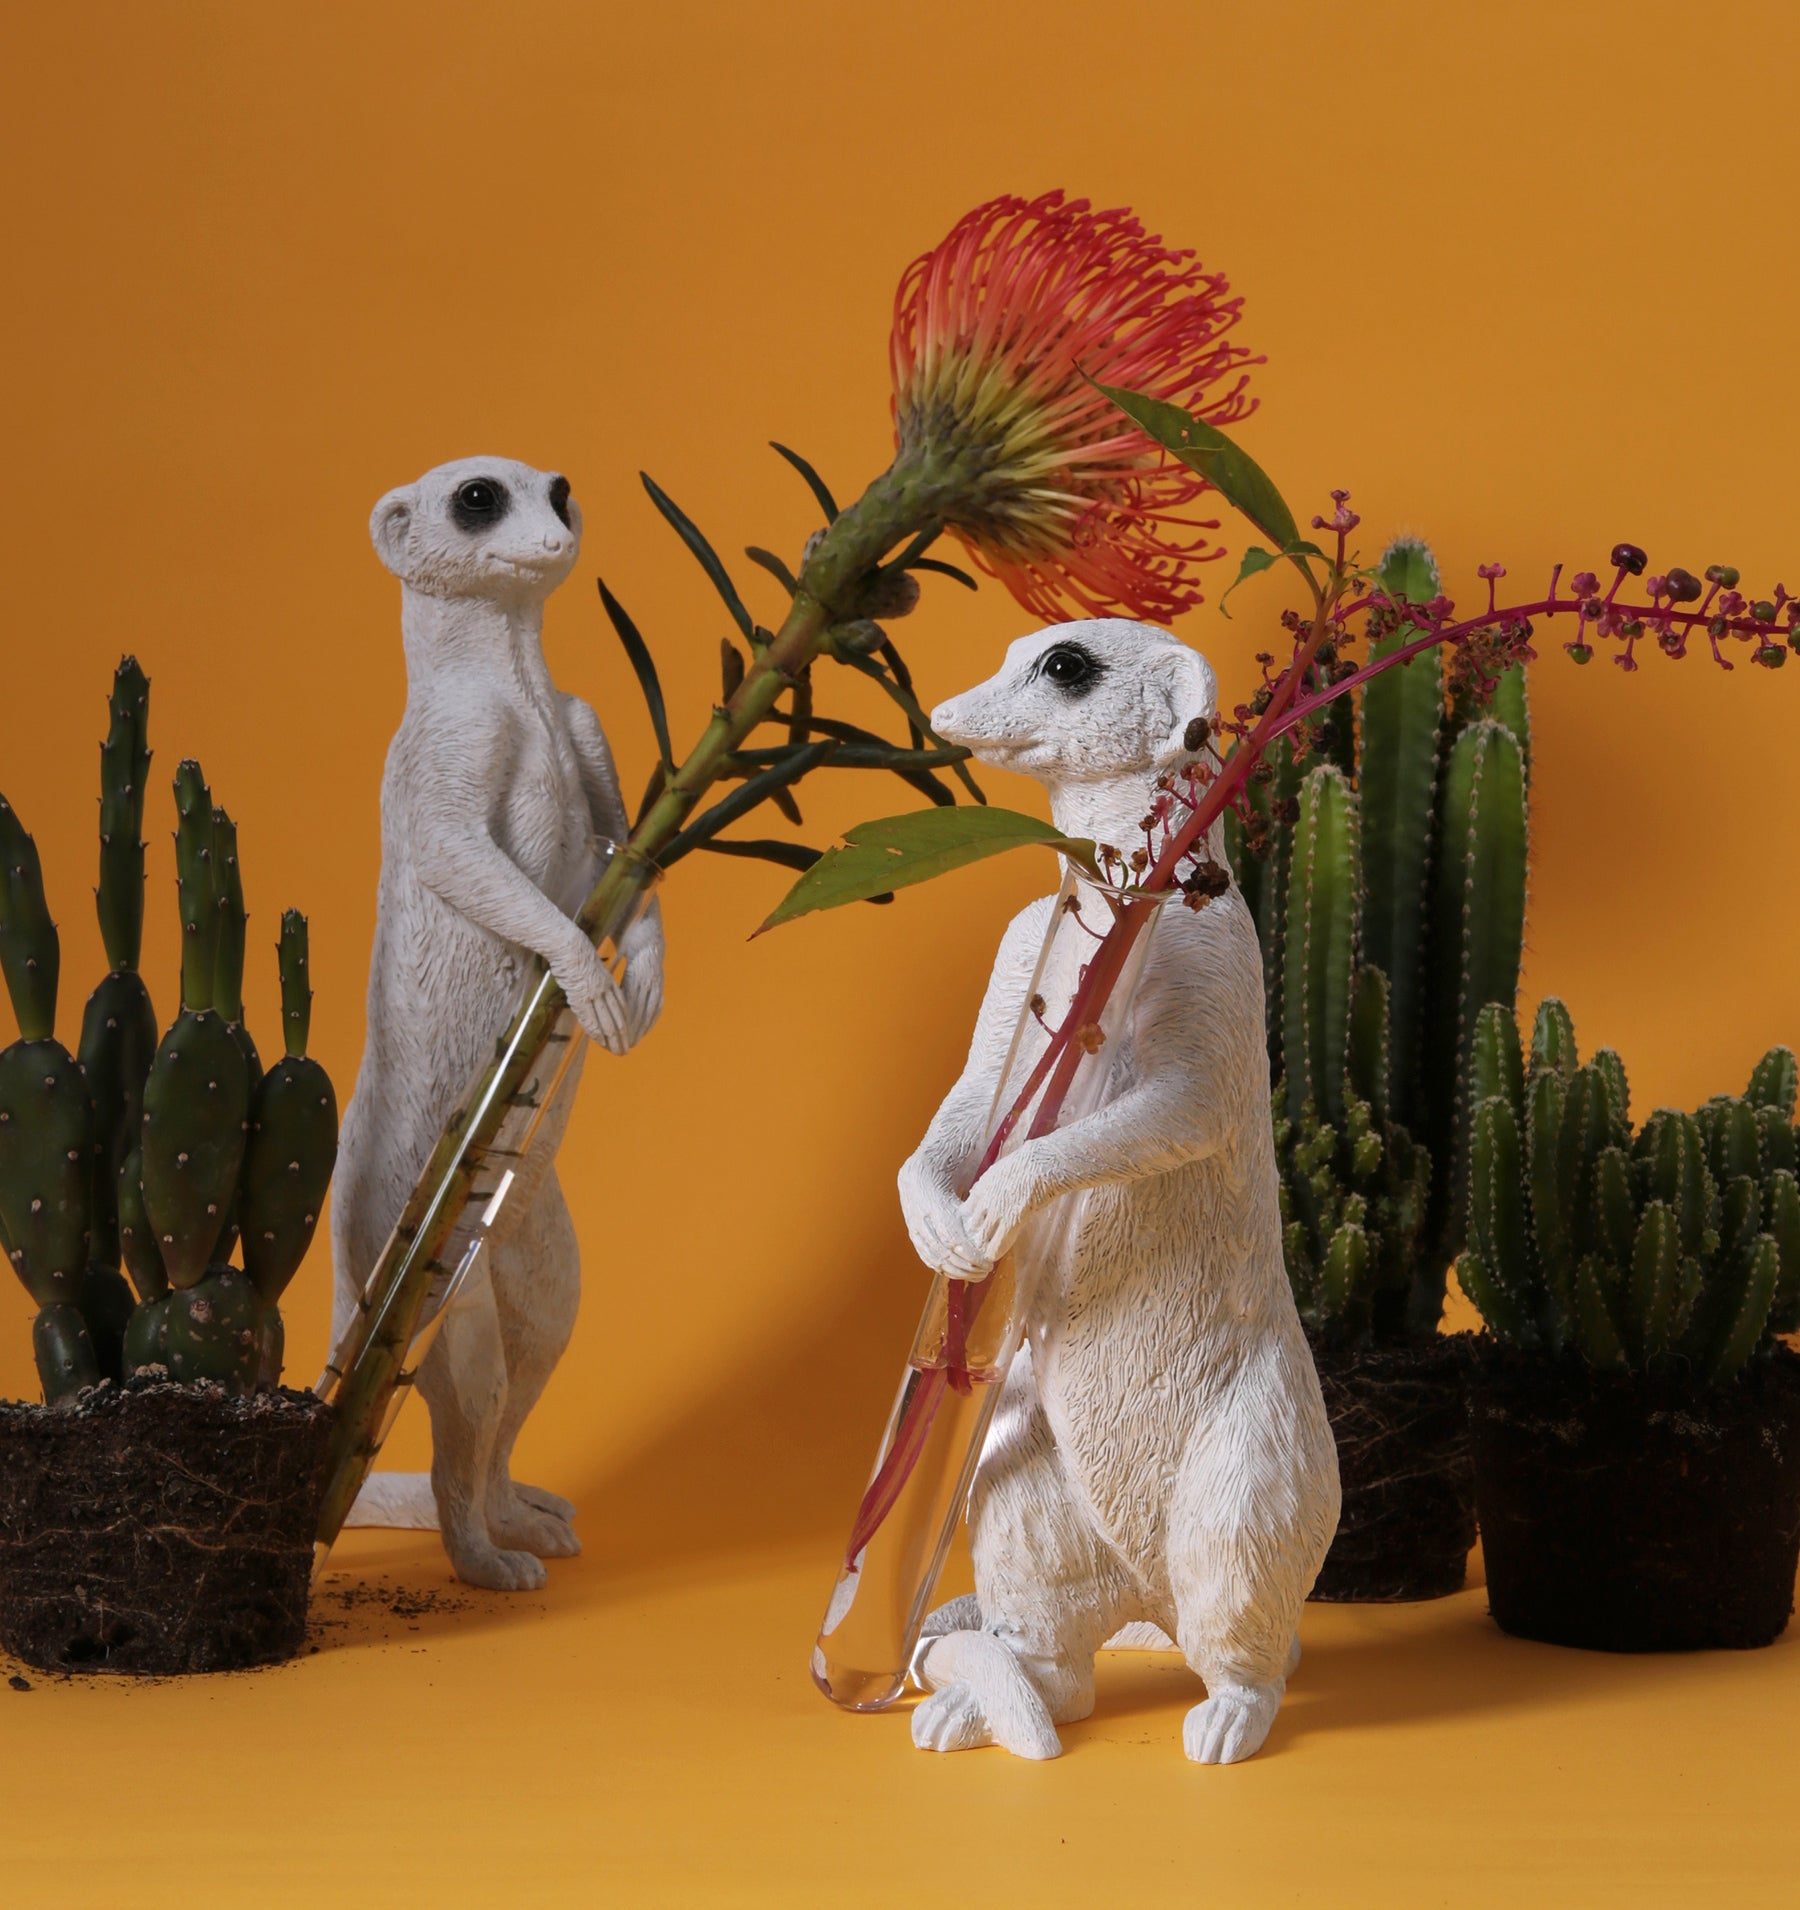 Magnificent Meerkat Ornaments: in vases and sculpture themes